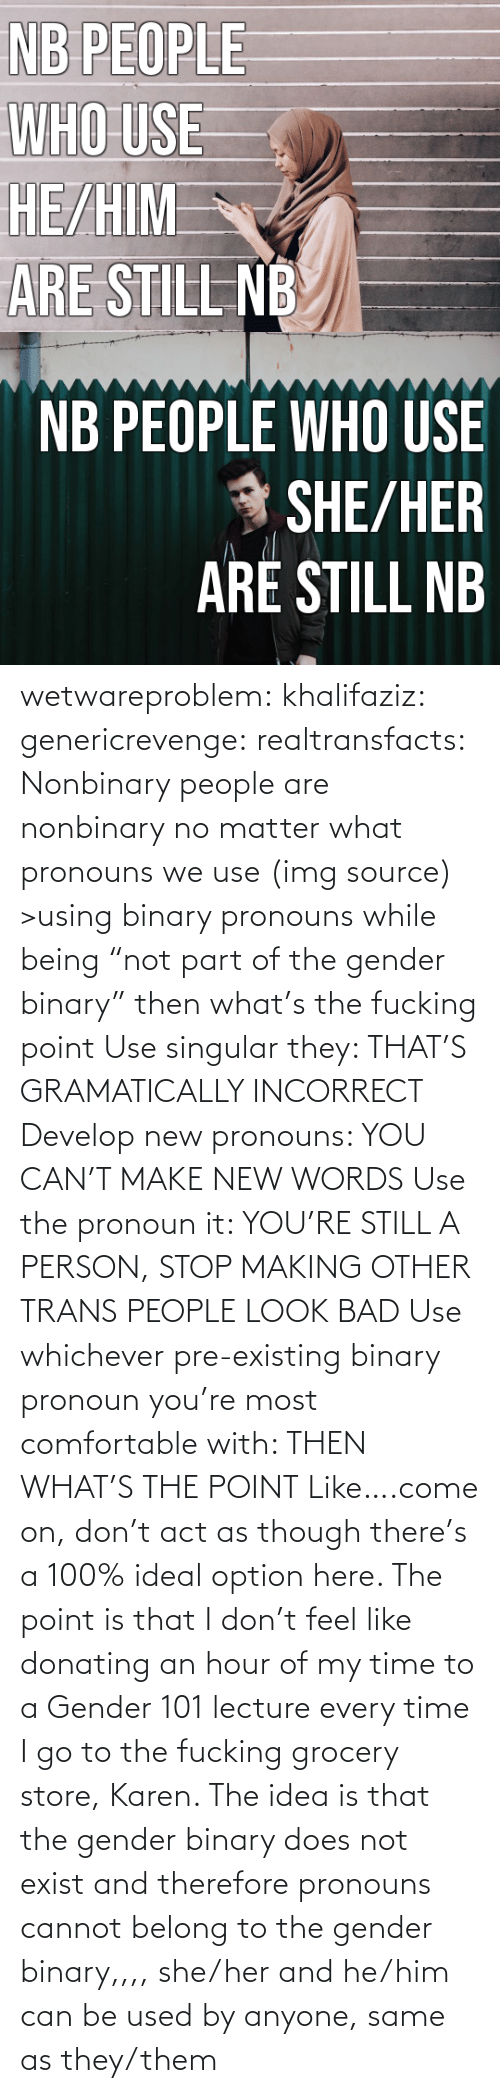 "I Go: NB PEOPLE  WHO USE  HE/HIM  ARE STILL NB   NB PEOPLE WHO USE  * SHE/HER  ARÉ STILL NB wetwareproblem: khalifaziz:   genericrevenge:   realtransfacts: Nonbinary people are nonbinary no matter what pronouns we use (img source)   >using binary pronouns while being ""not part of the gender binary"" then what's the fucking point   Use singular they: THAT'S GRAMATICALLY INCORRECT Develop new pronouns: YOU CAN'T MAKE NEW WORDS Use the pronoun it: YOU'RE STILL A PERSON, STOP MAKING OTHER TRANS PEOPLE LOOK BAD Use whichever pre-existing binary pronoun you're most comfortable with: THEN WHAT'S THE POINT Like….come on, don't act as though there's a 100% ideal option here.    The point is that I don't feel like donating an hour of my time to a Gender 101 lecture every time I go to the fucking grocery store, Karen.     The idea is that the gender binary does not exist and therefore pronouns cannot belong to the gender binary,,,, she/her and he/him can be used by anyone, same as they/them"